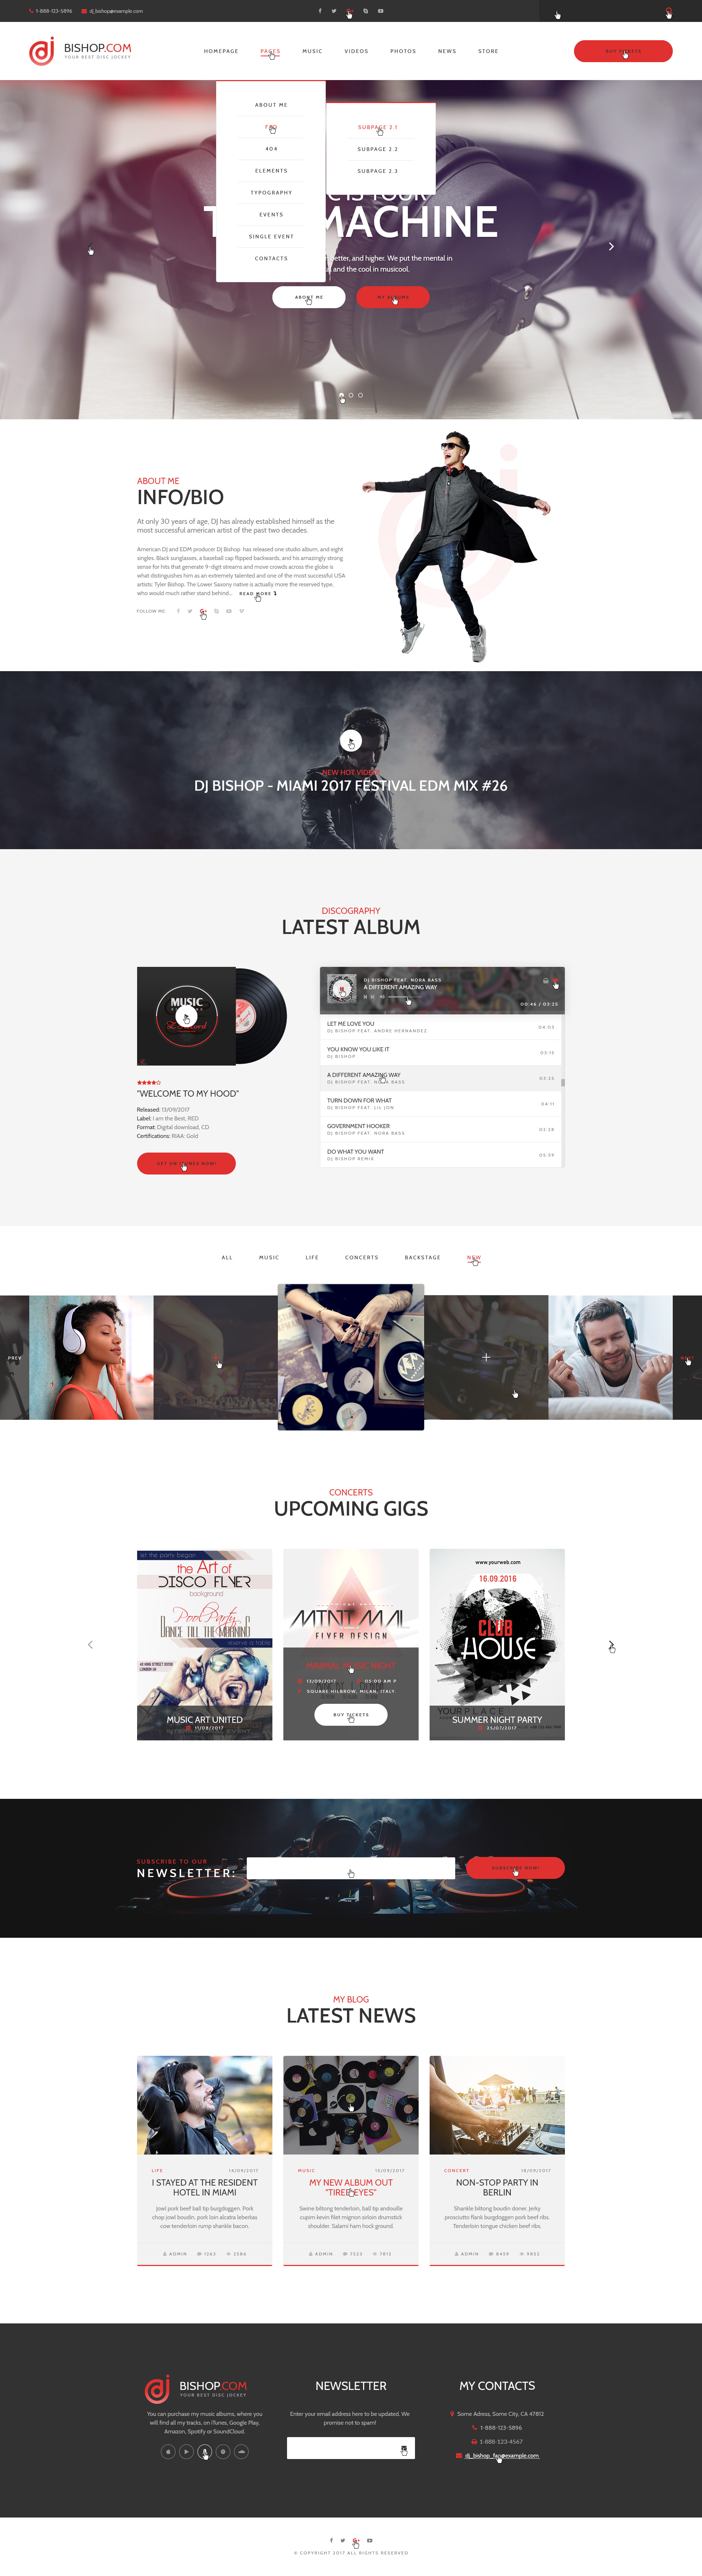 Dj Bishop - Dj Personal Page PSD Template by WPRollers | ThemeForest